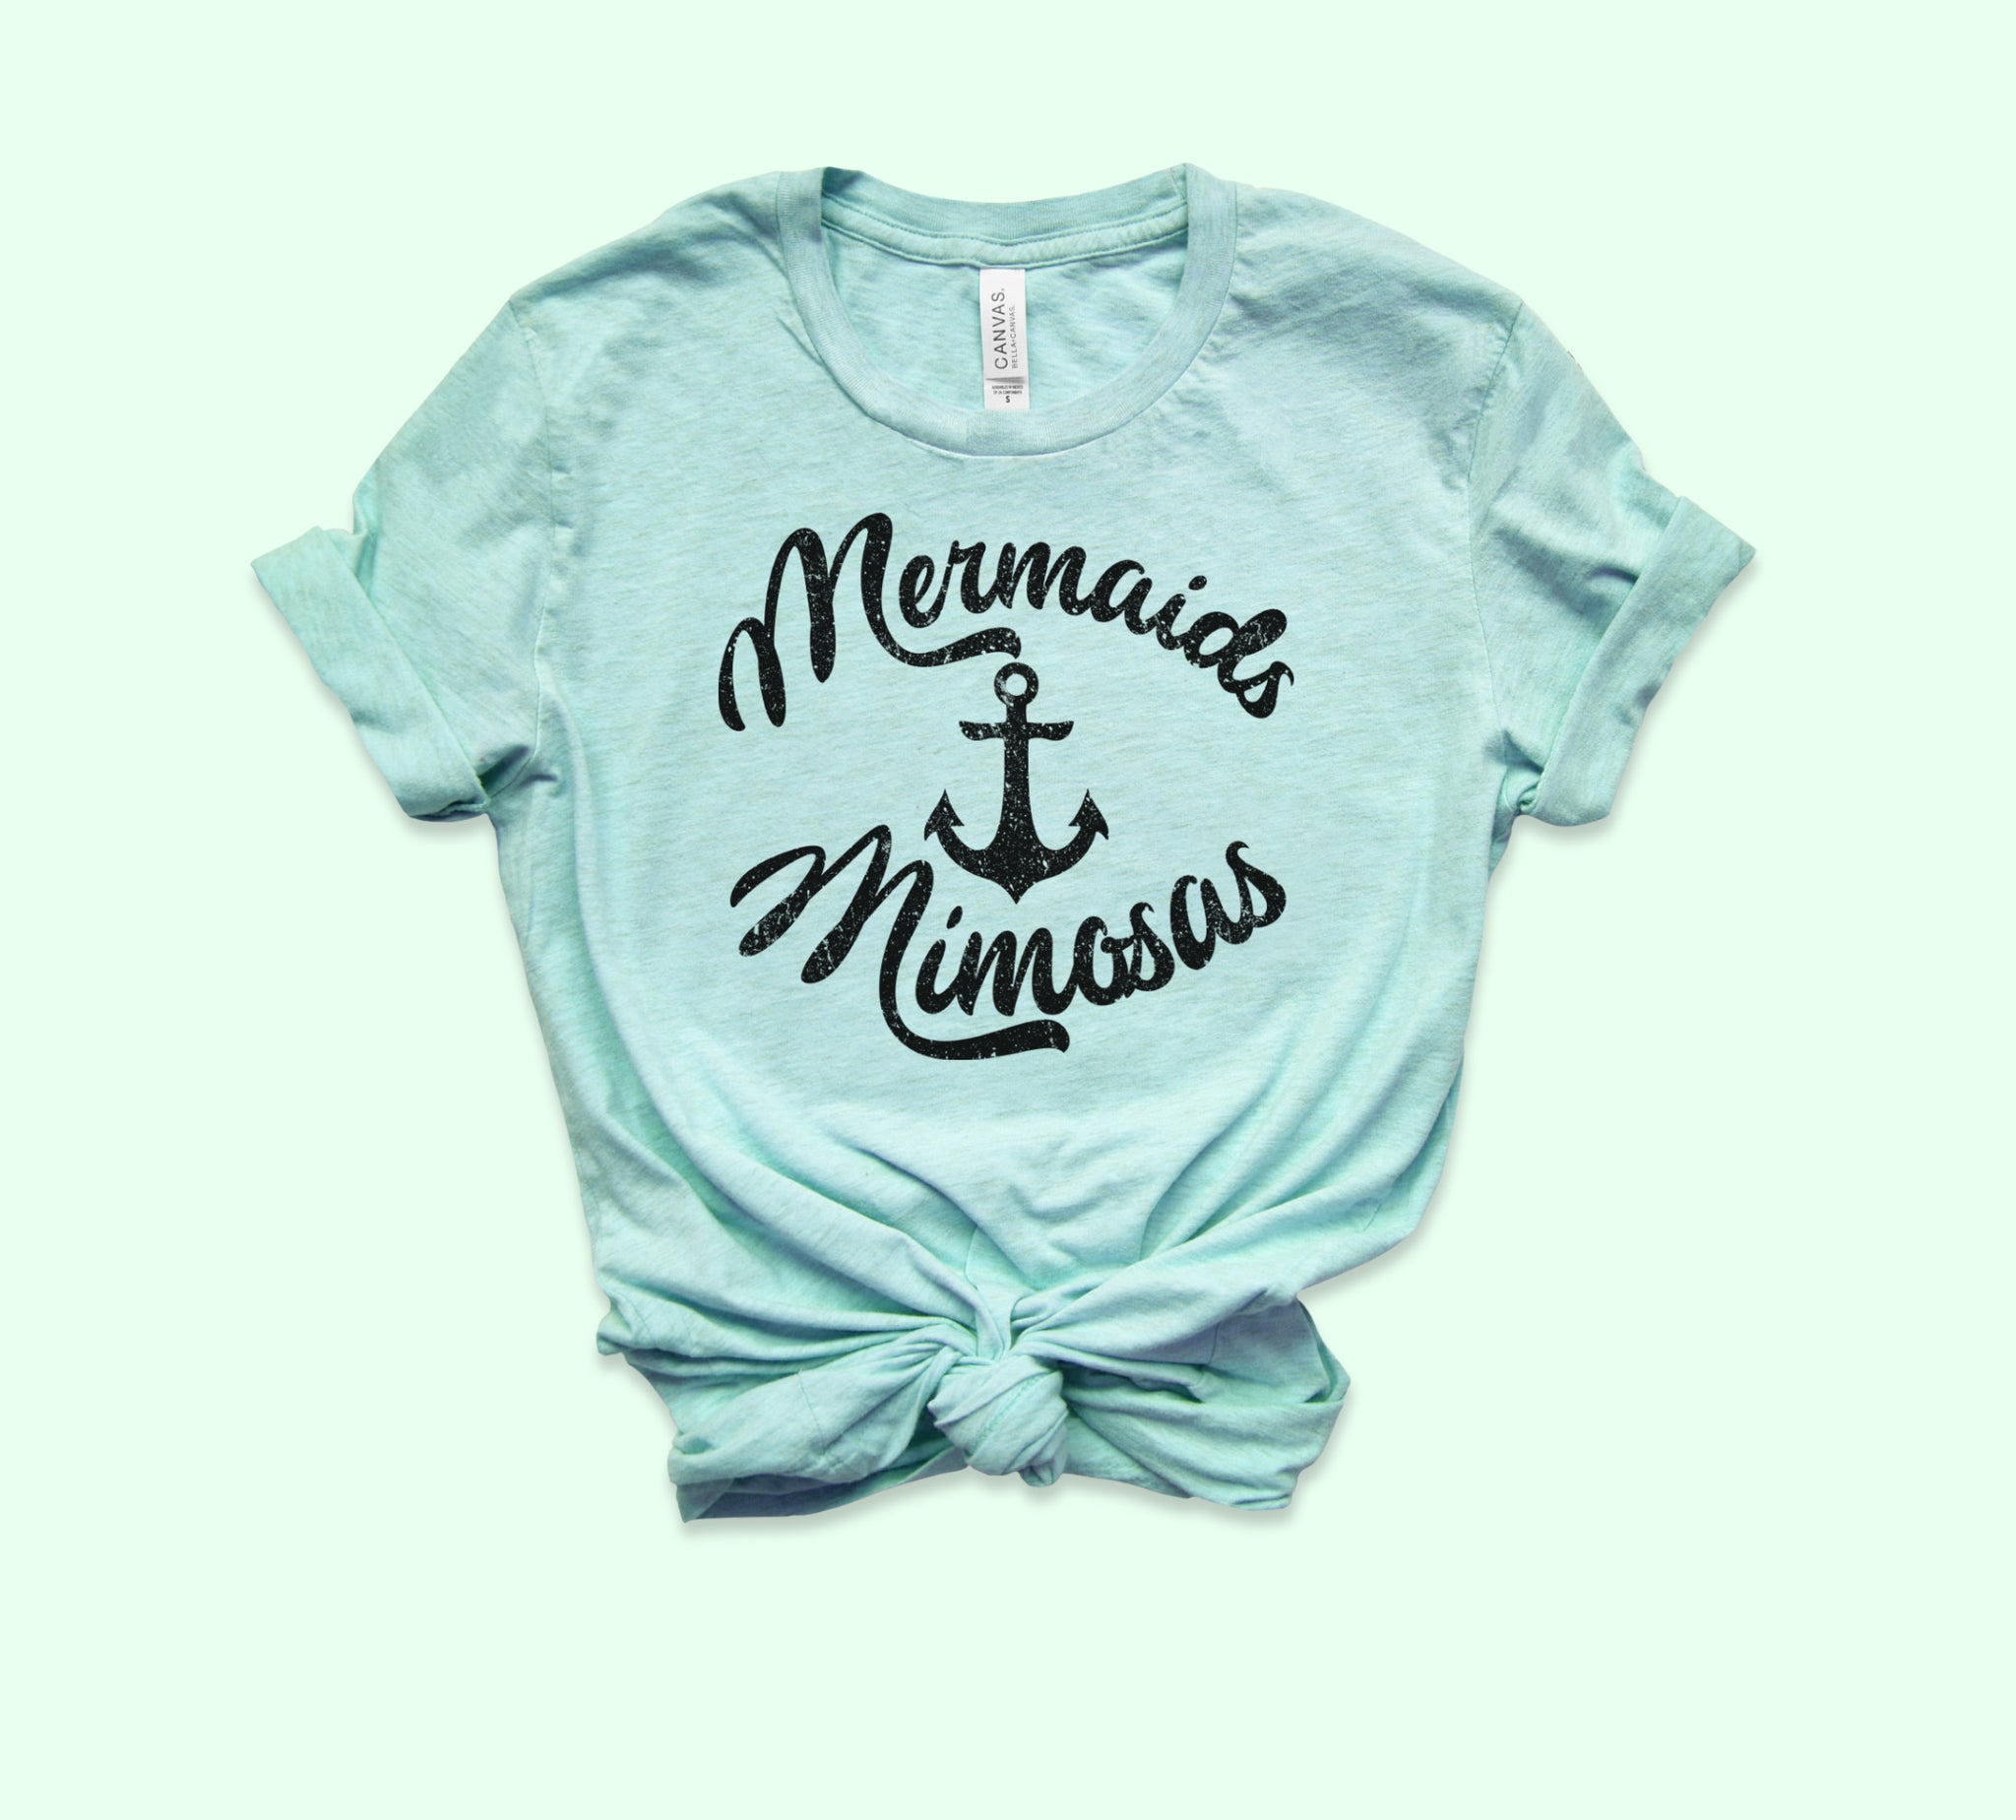 Mermaids And Mimosas Shirt